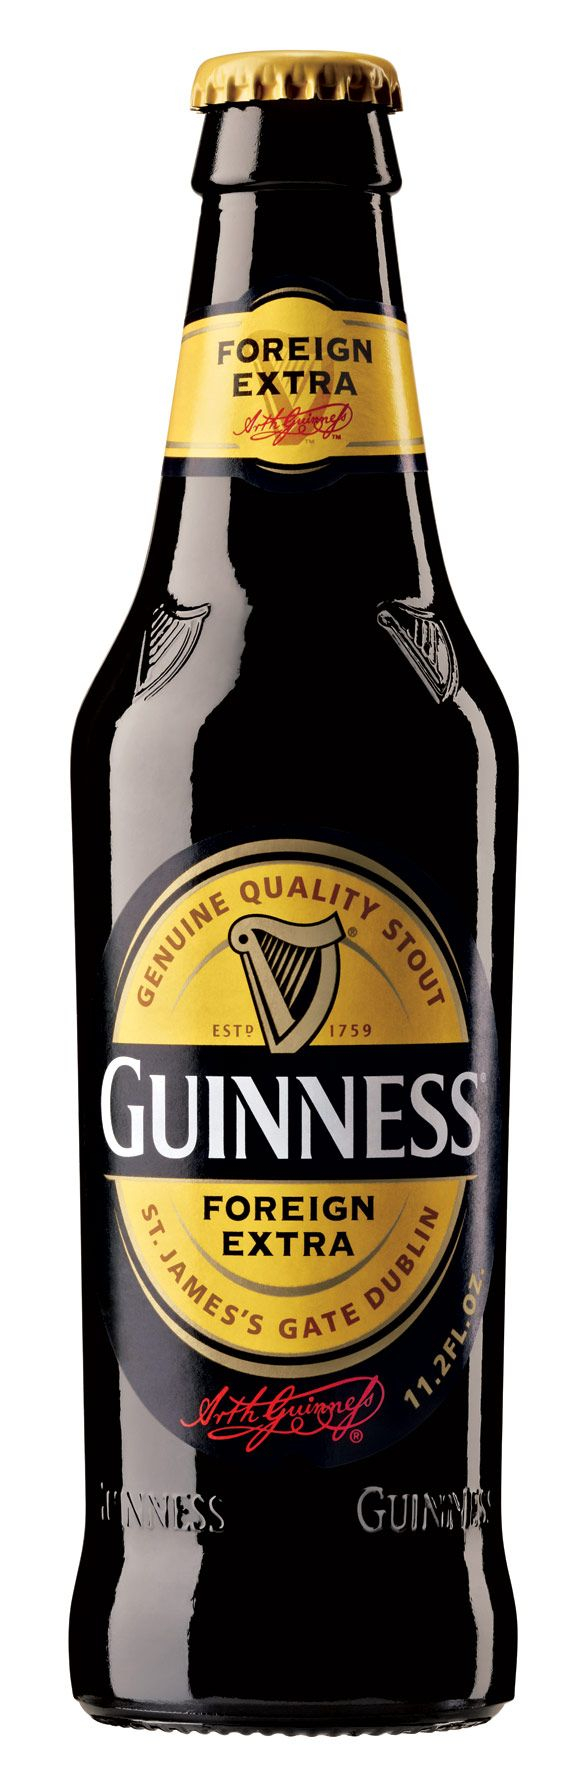 Guinness clipart popular beer Foreign pixels Guinness 587×1 Extra